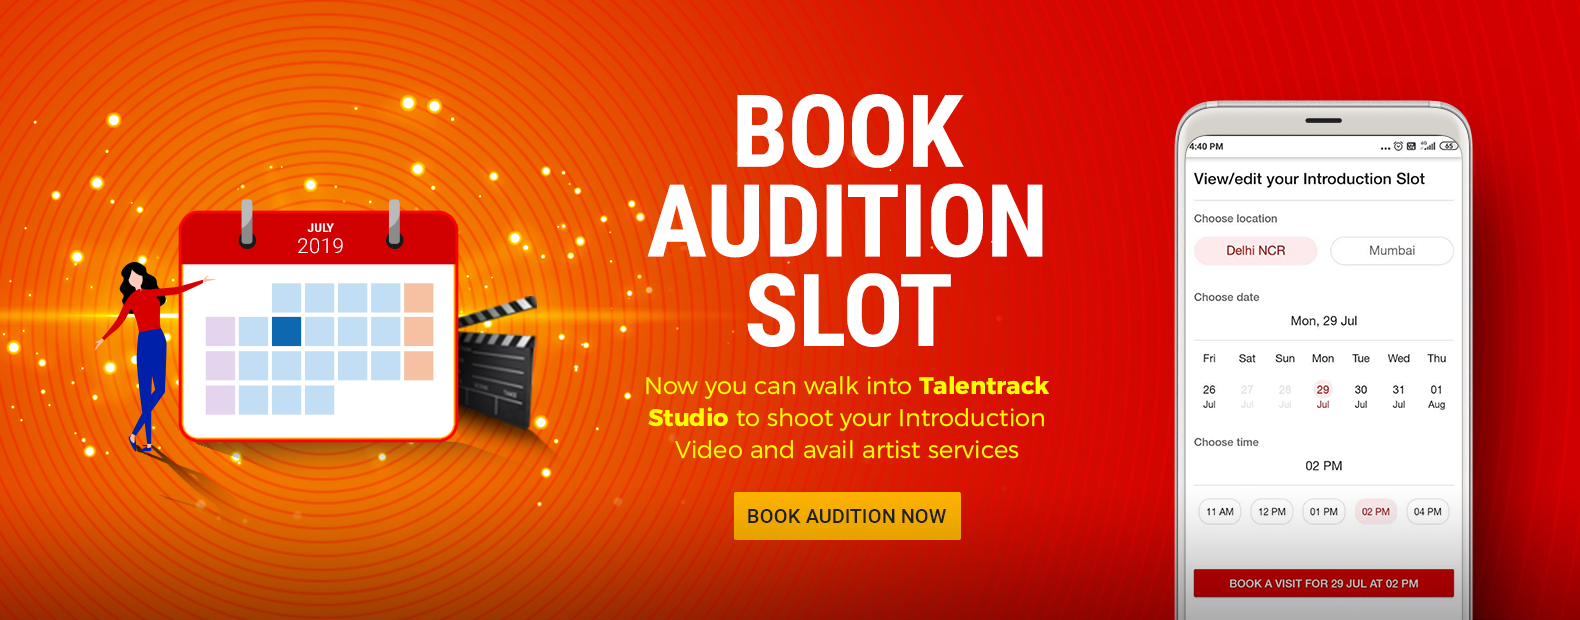 BOOK AUDITION SLOT